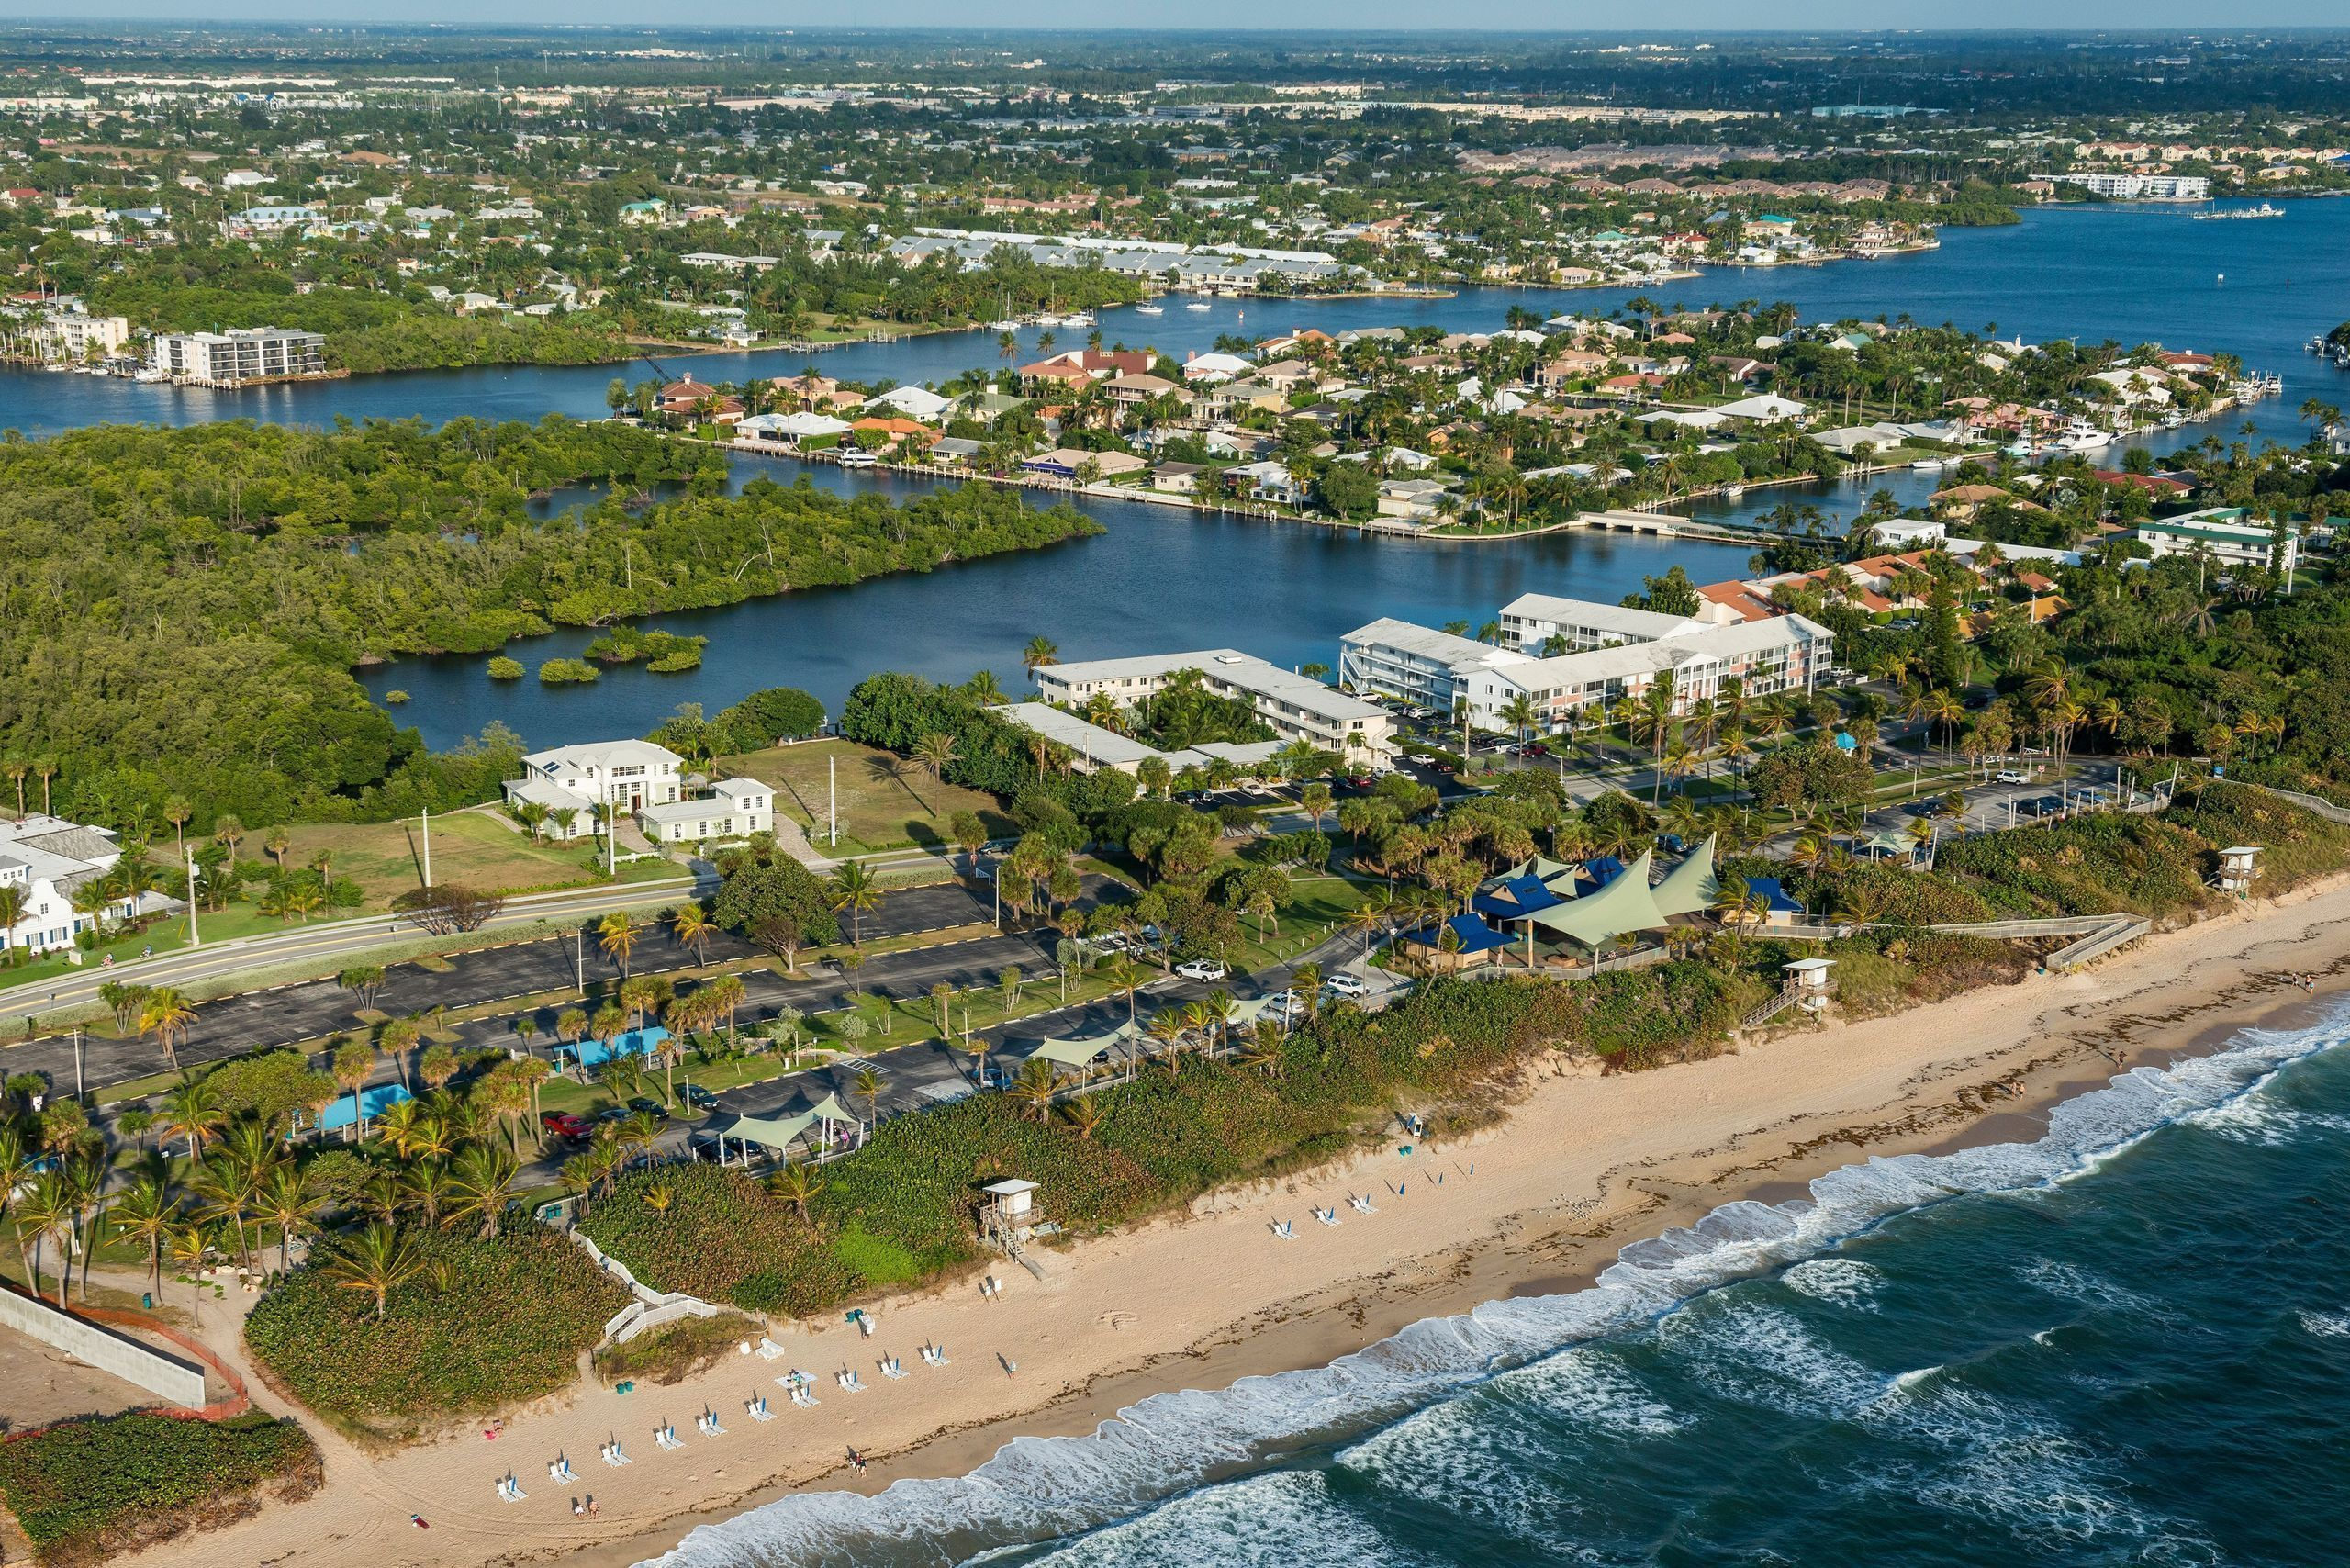 Ocean Ridge in Palm Beach County, Florida